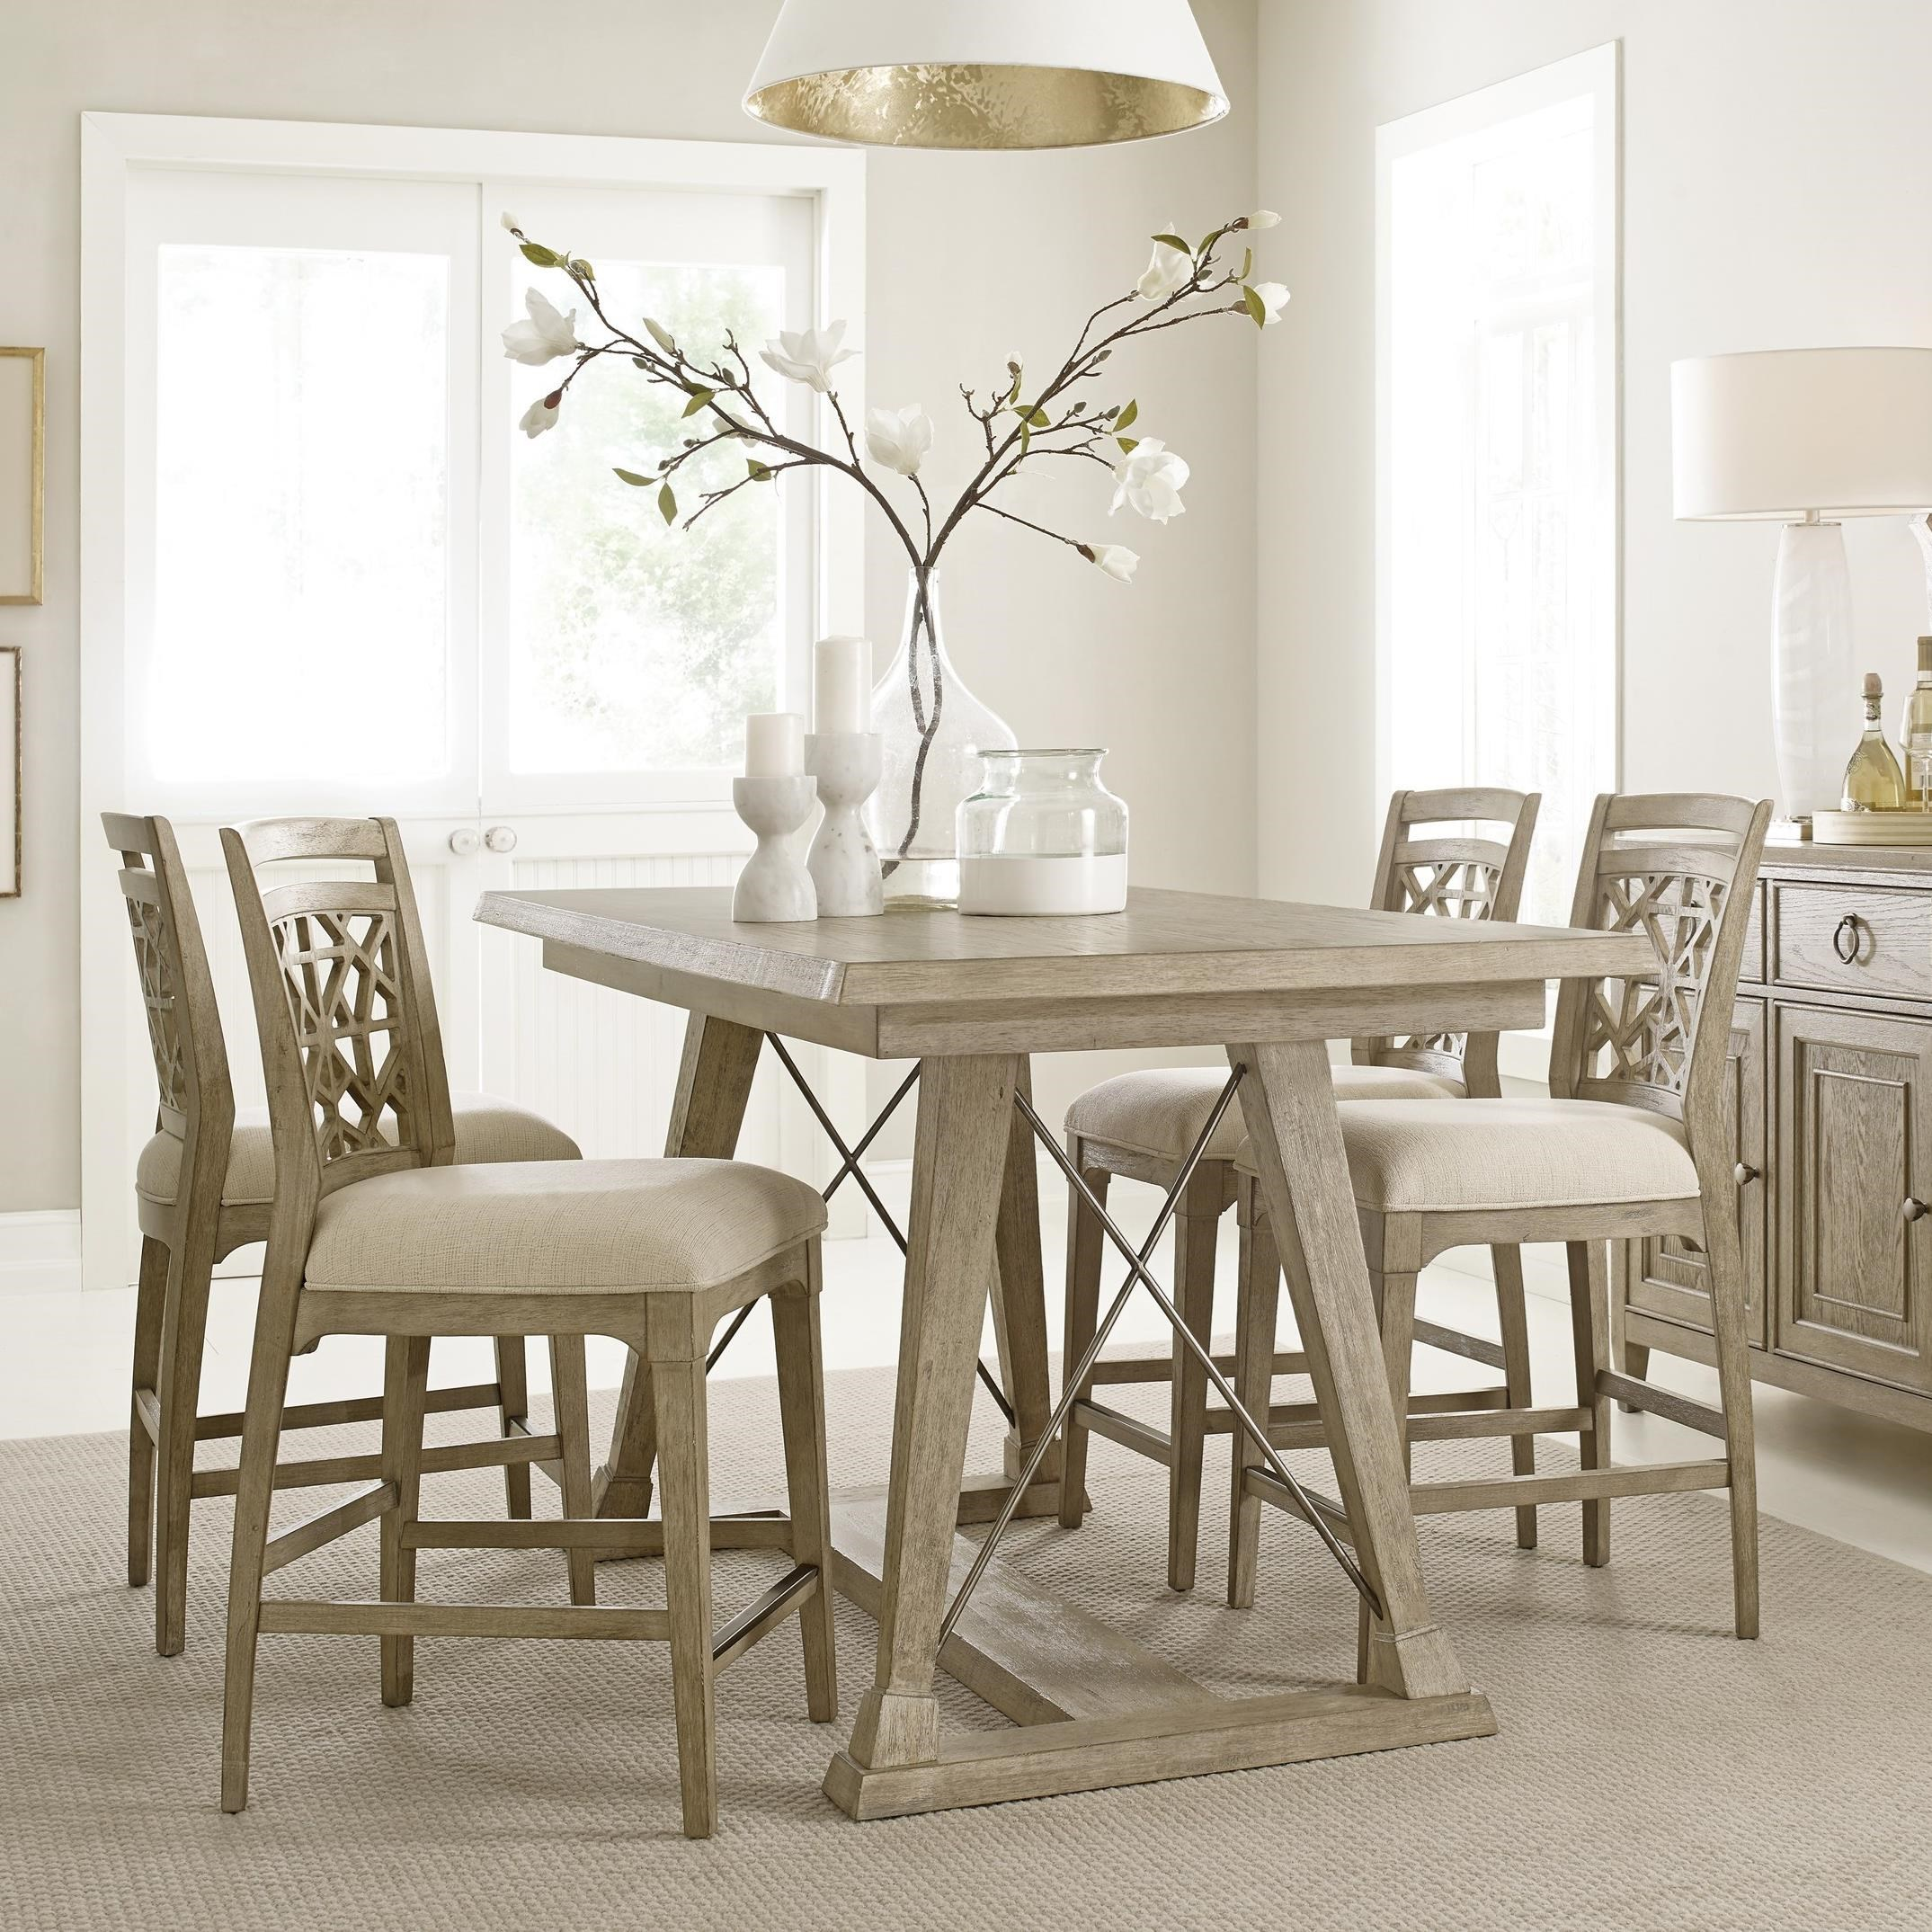 Vista 5 Piece Dining Set by American Drew at Alison Craig Home Furnishings